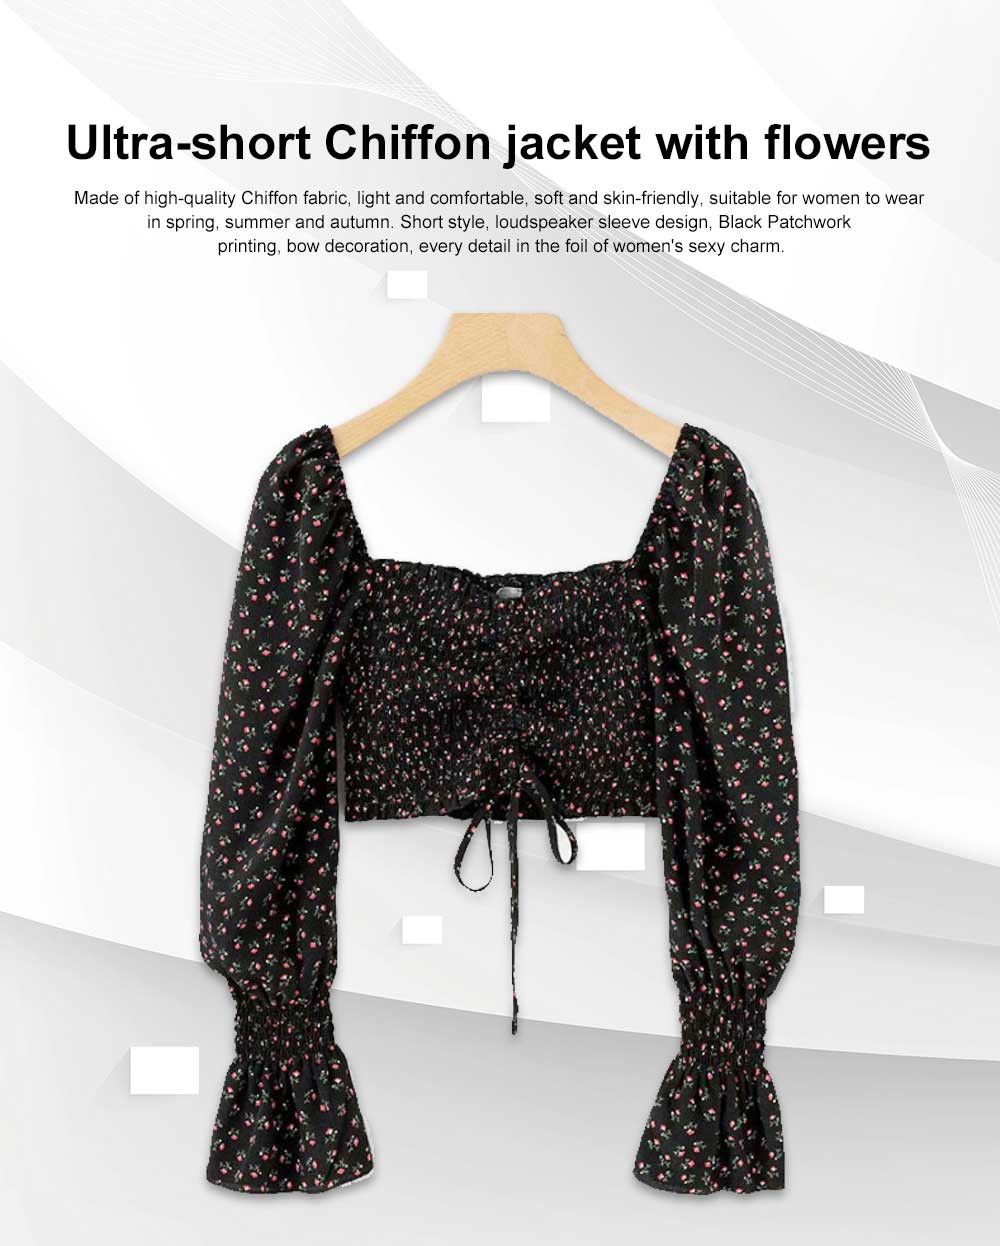 Super-short Chiffon Jacket 2019 Summer Autumn Slim Floral Retro Chiffon Blouses With Bell Sleeve 0